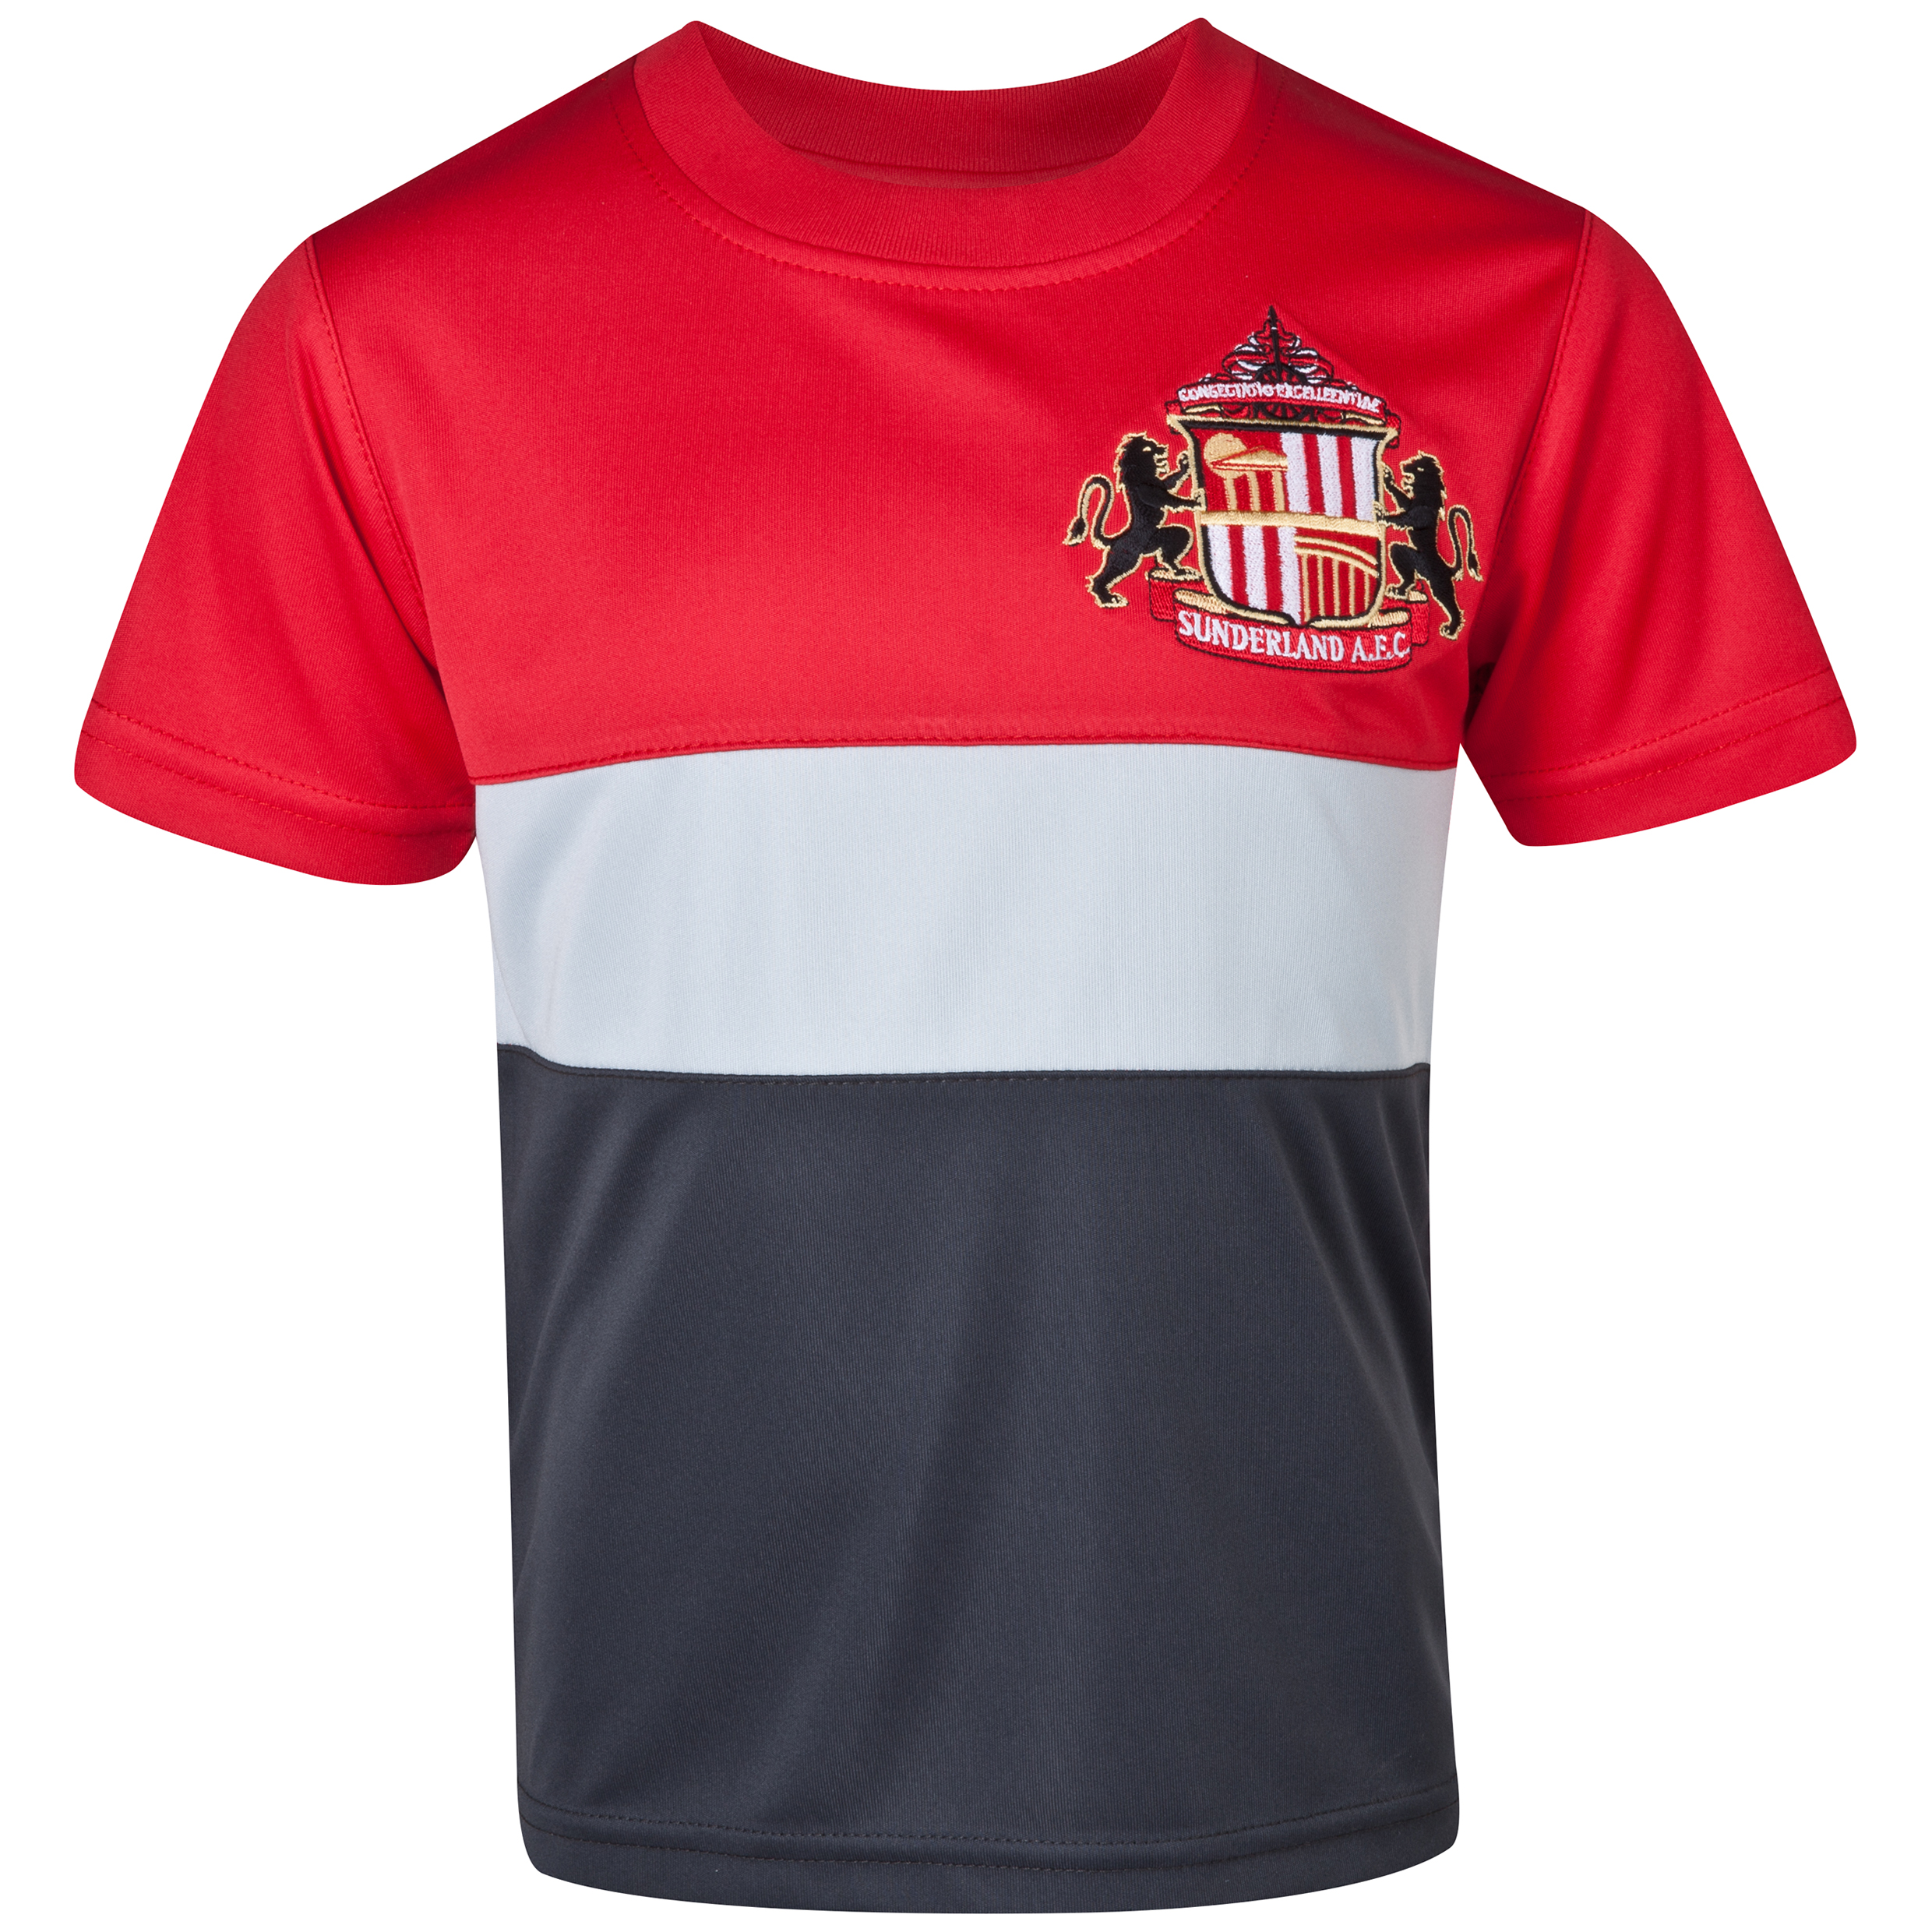 Sunderland Essentials Tiers T-Shirt - Infant Boys Red